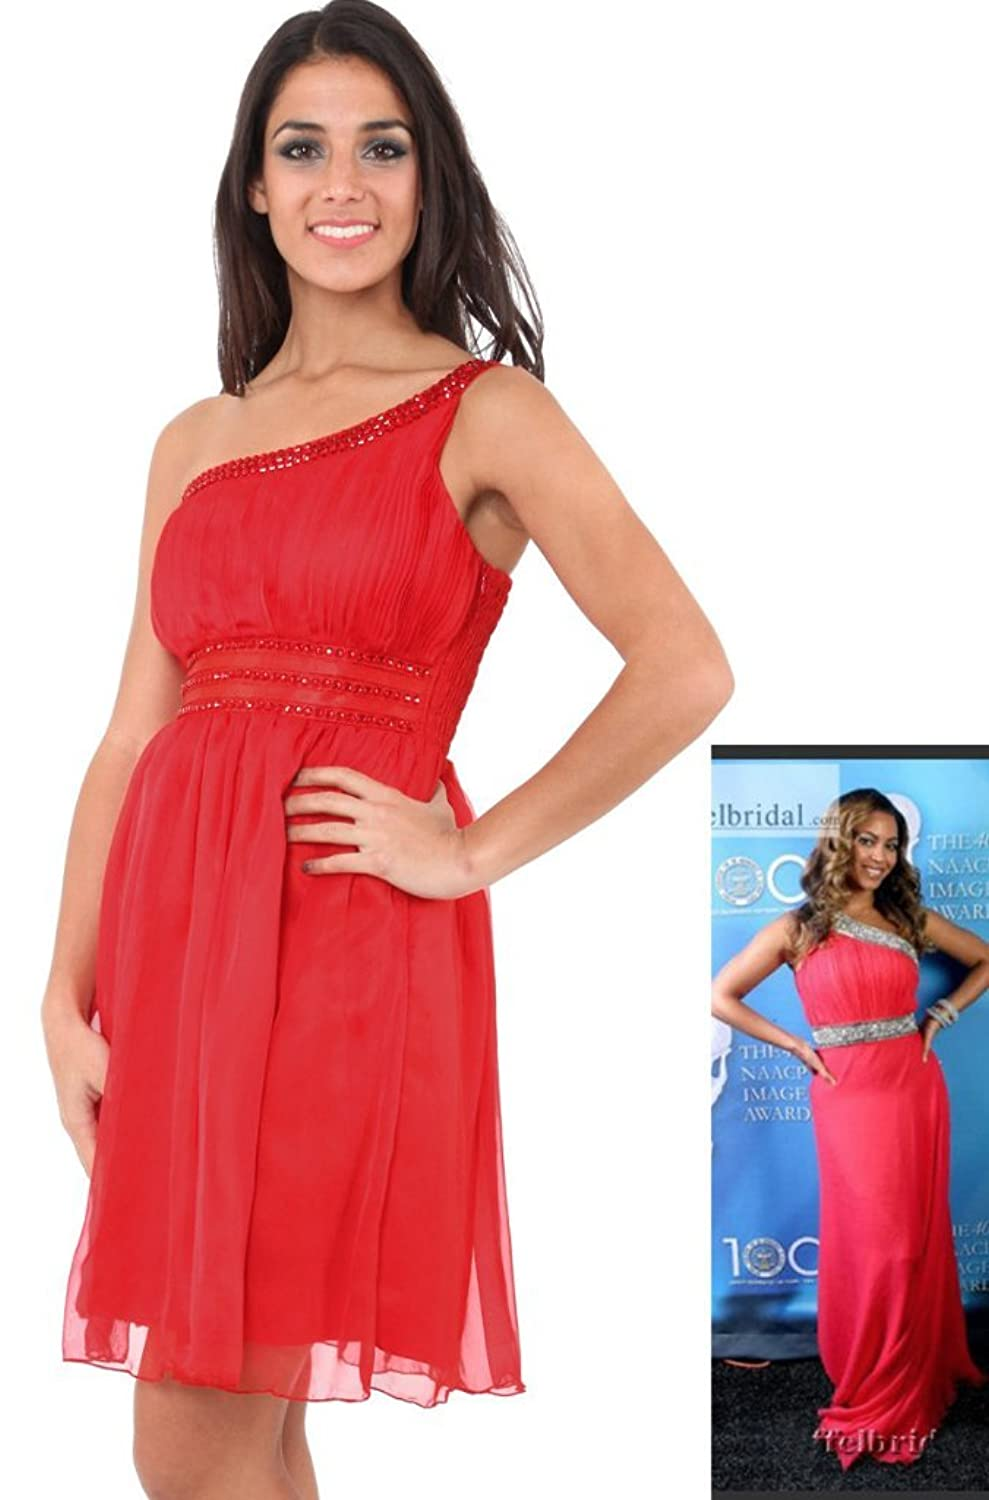 grecian one shoulder jewel trim pleat chiffon floaty dress in teal or red